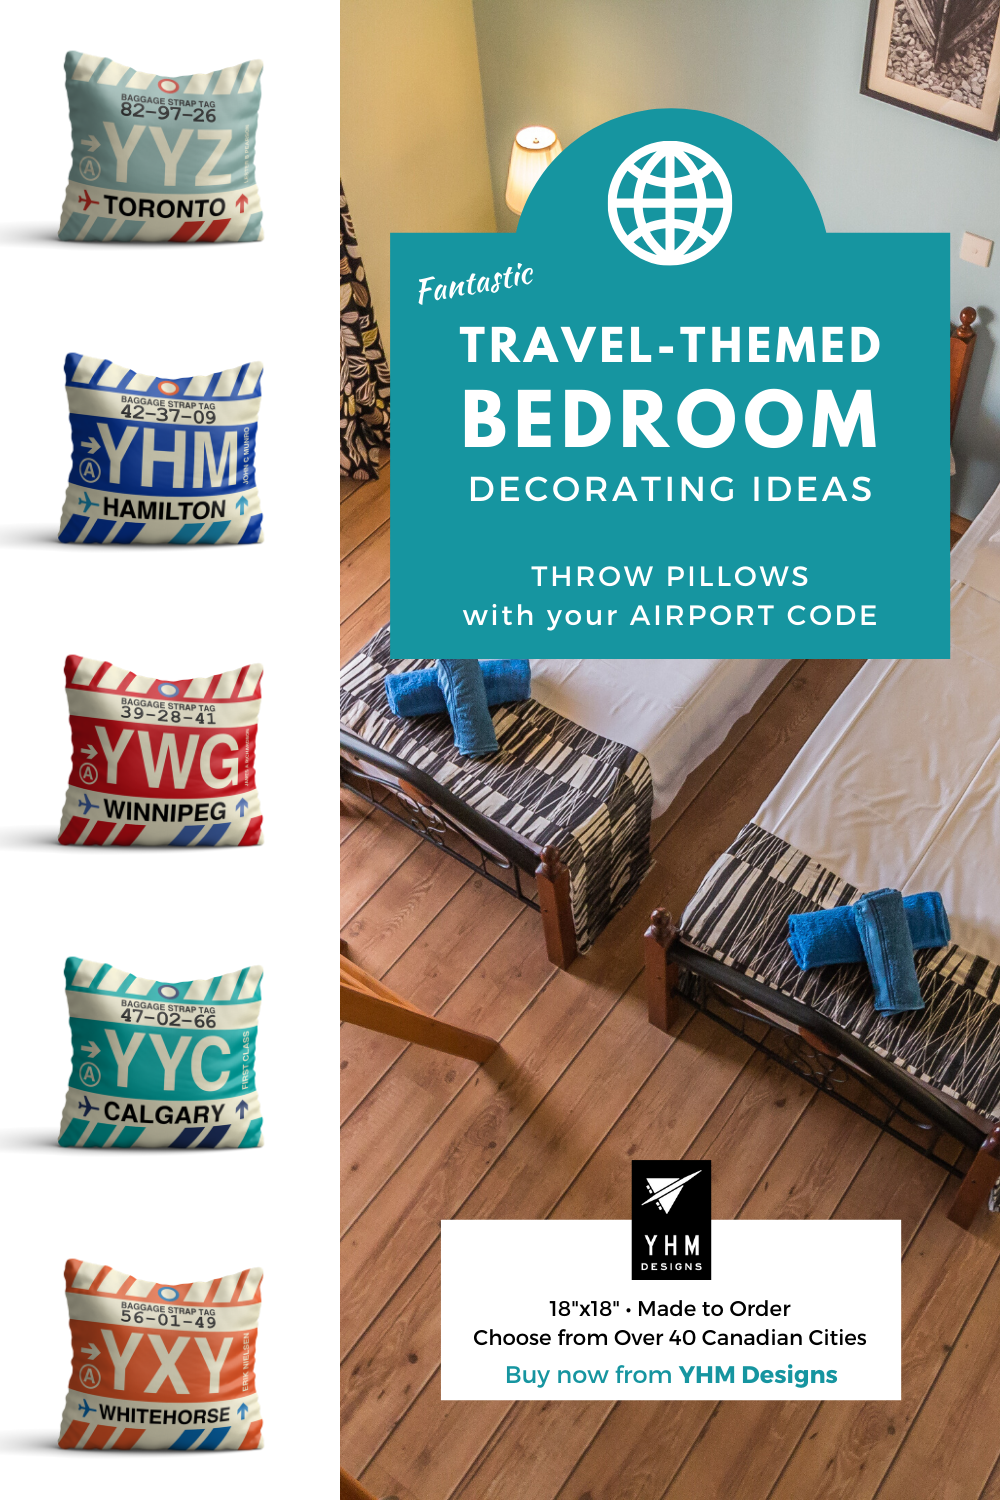 Add a pop of colour to your bedroom with throw pillows